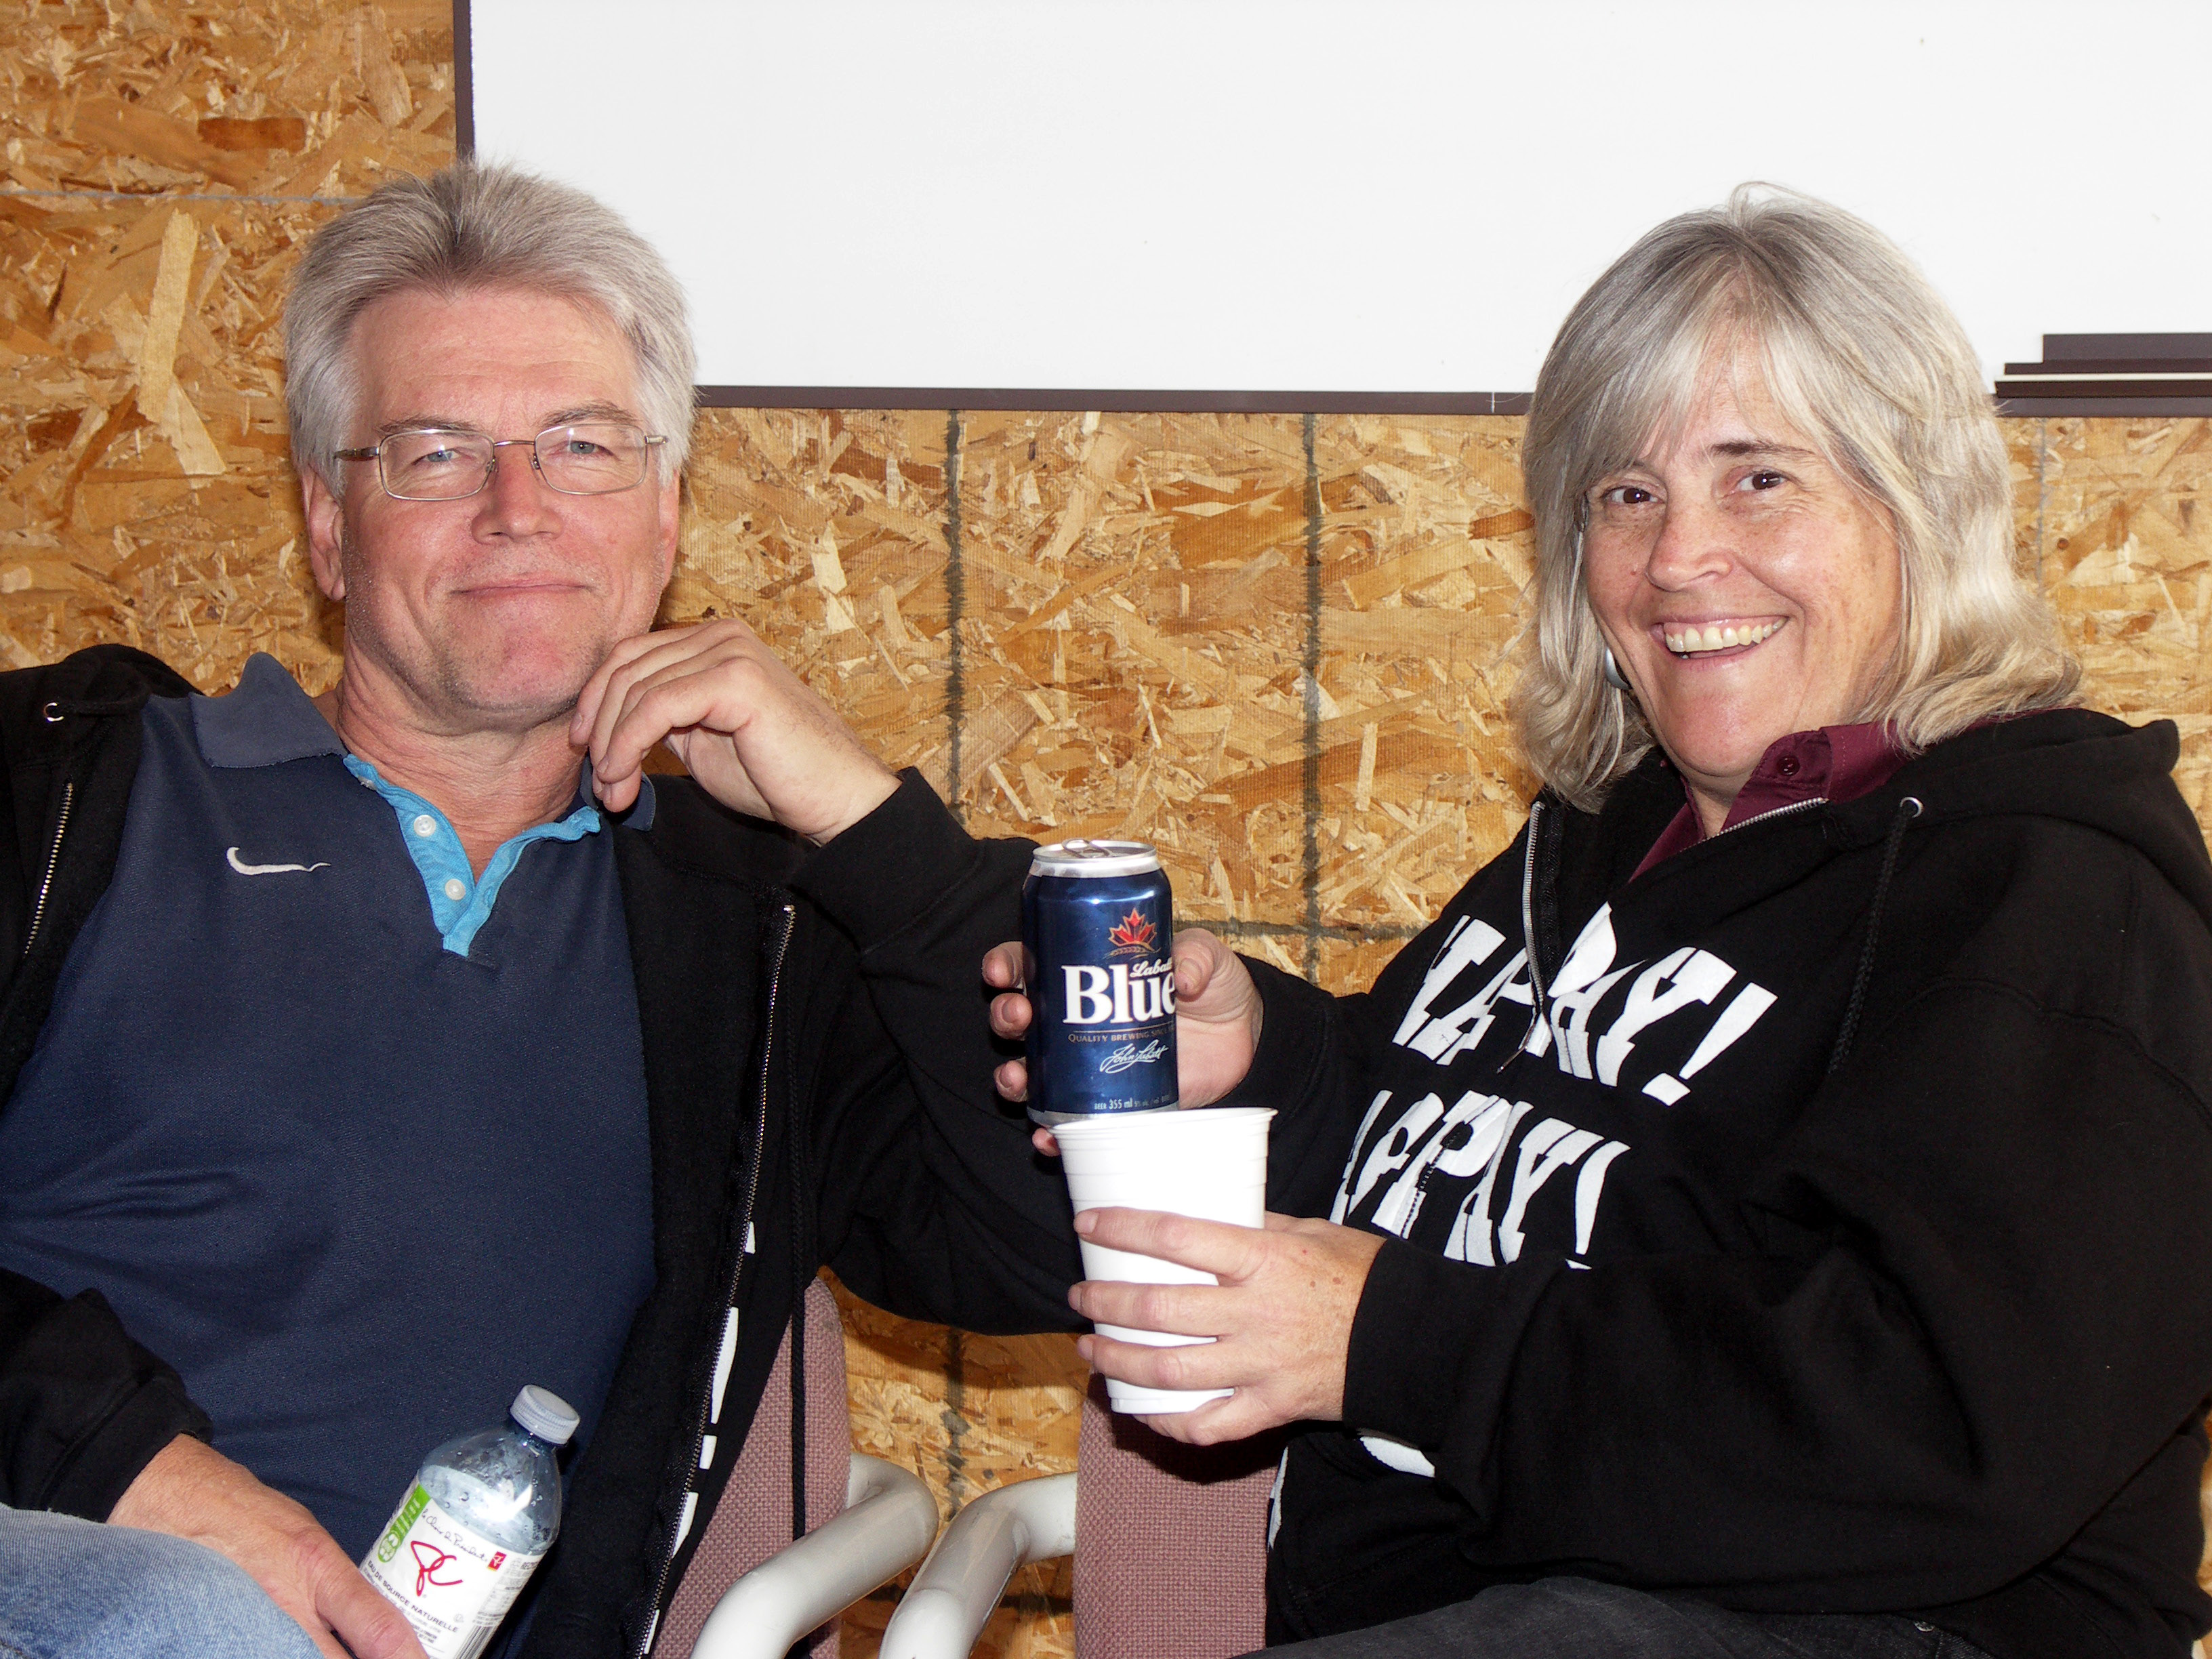 Karen and Dieter, always ready to pitch in for the club..taking a much deserved break from hangar clean up.